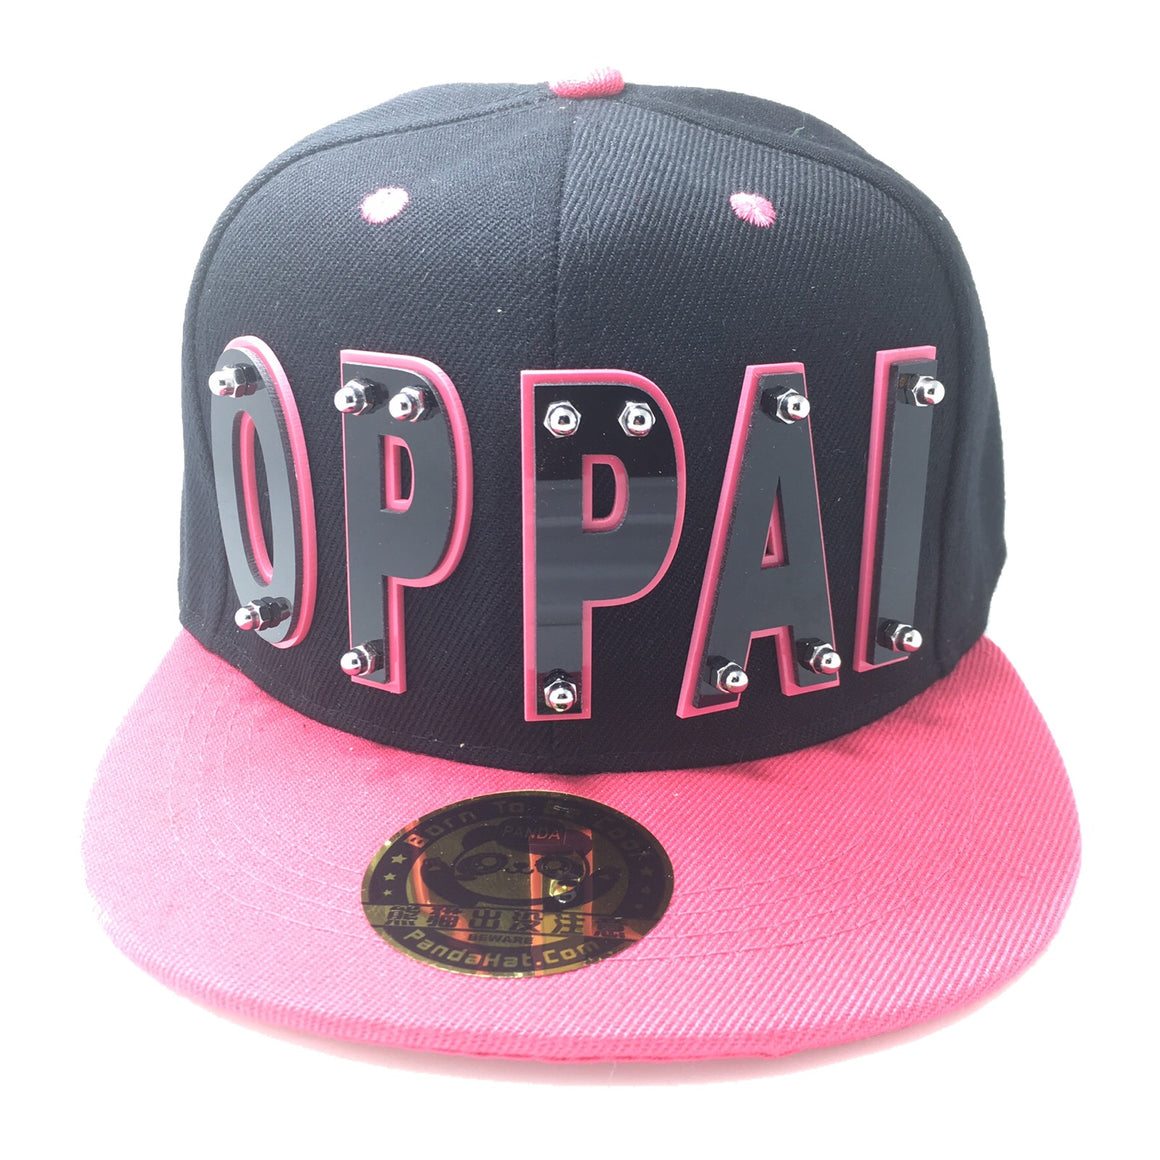 OPPAI HAT PINK